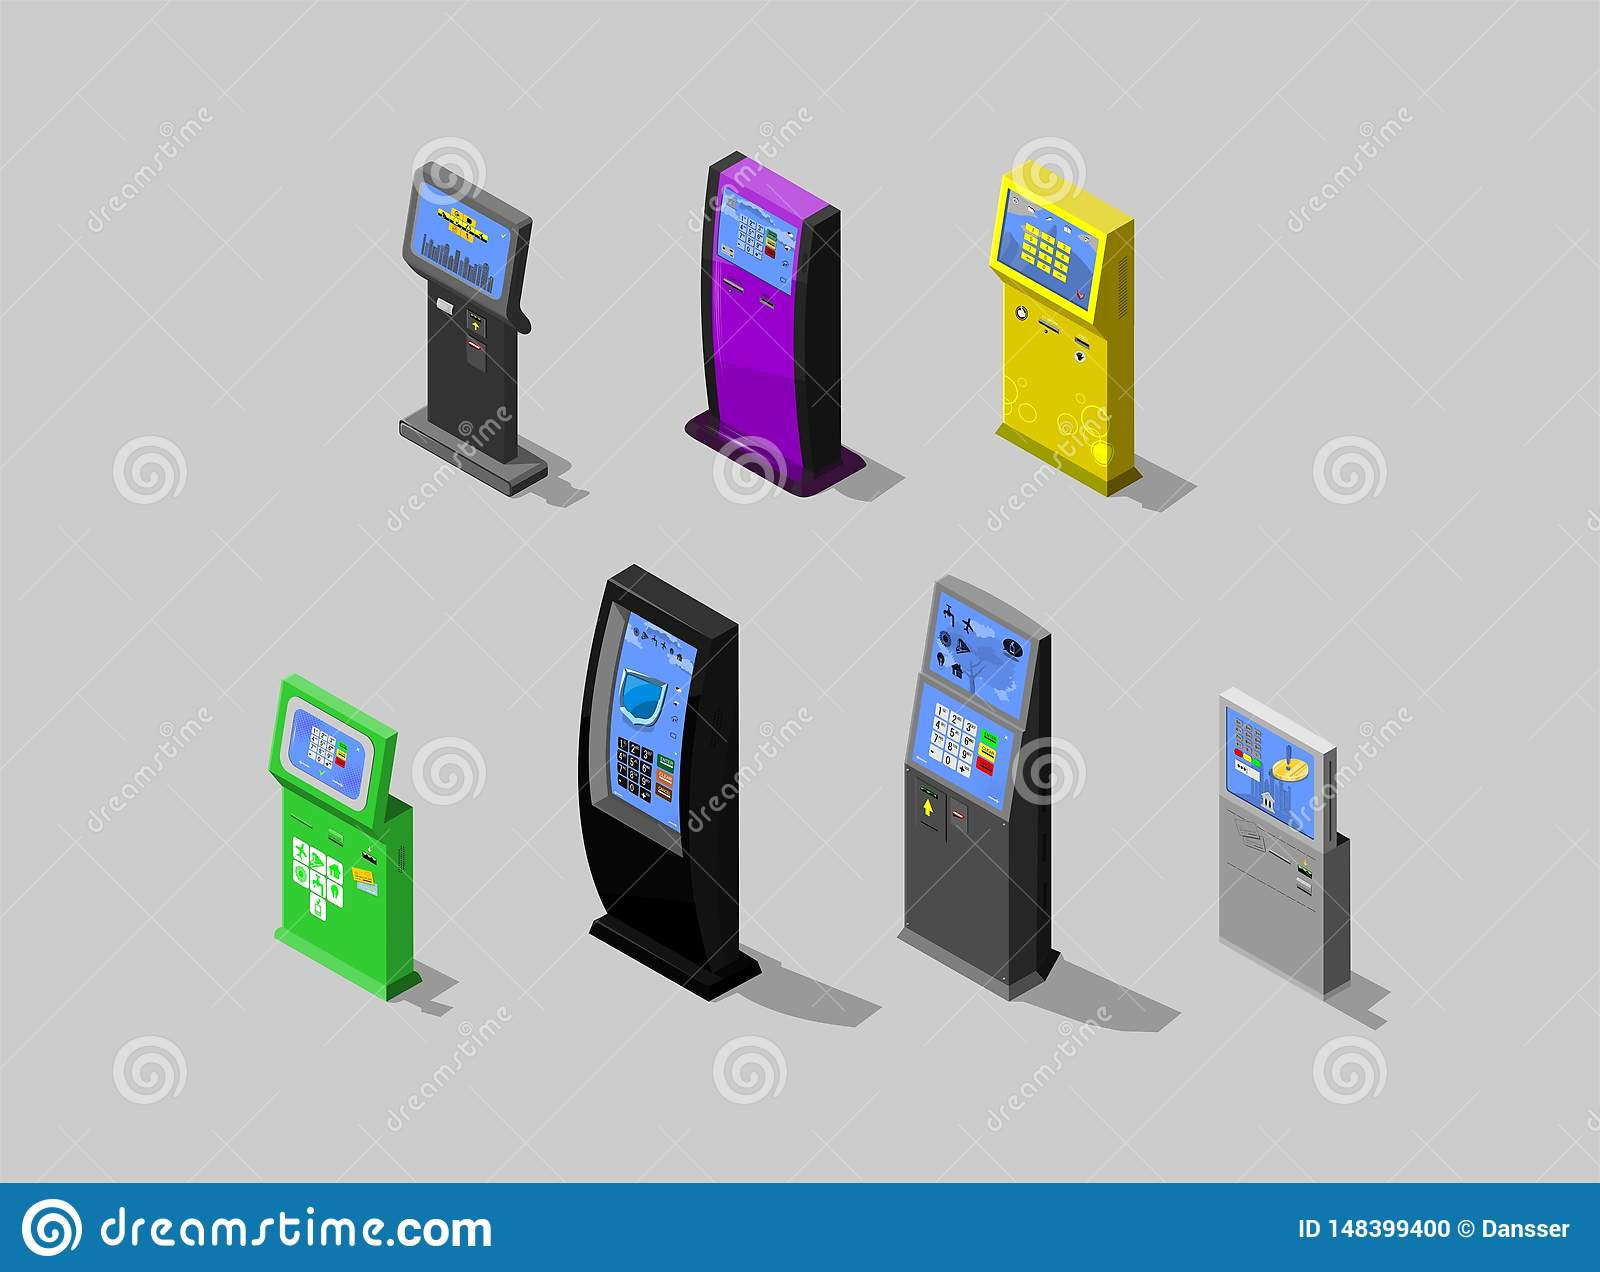 Isometric Concept Of Payment Terminal, Interactive Kiosk